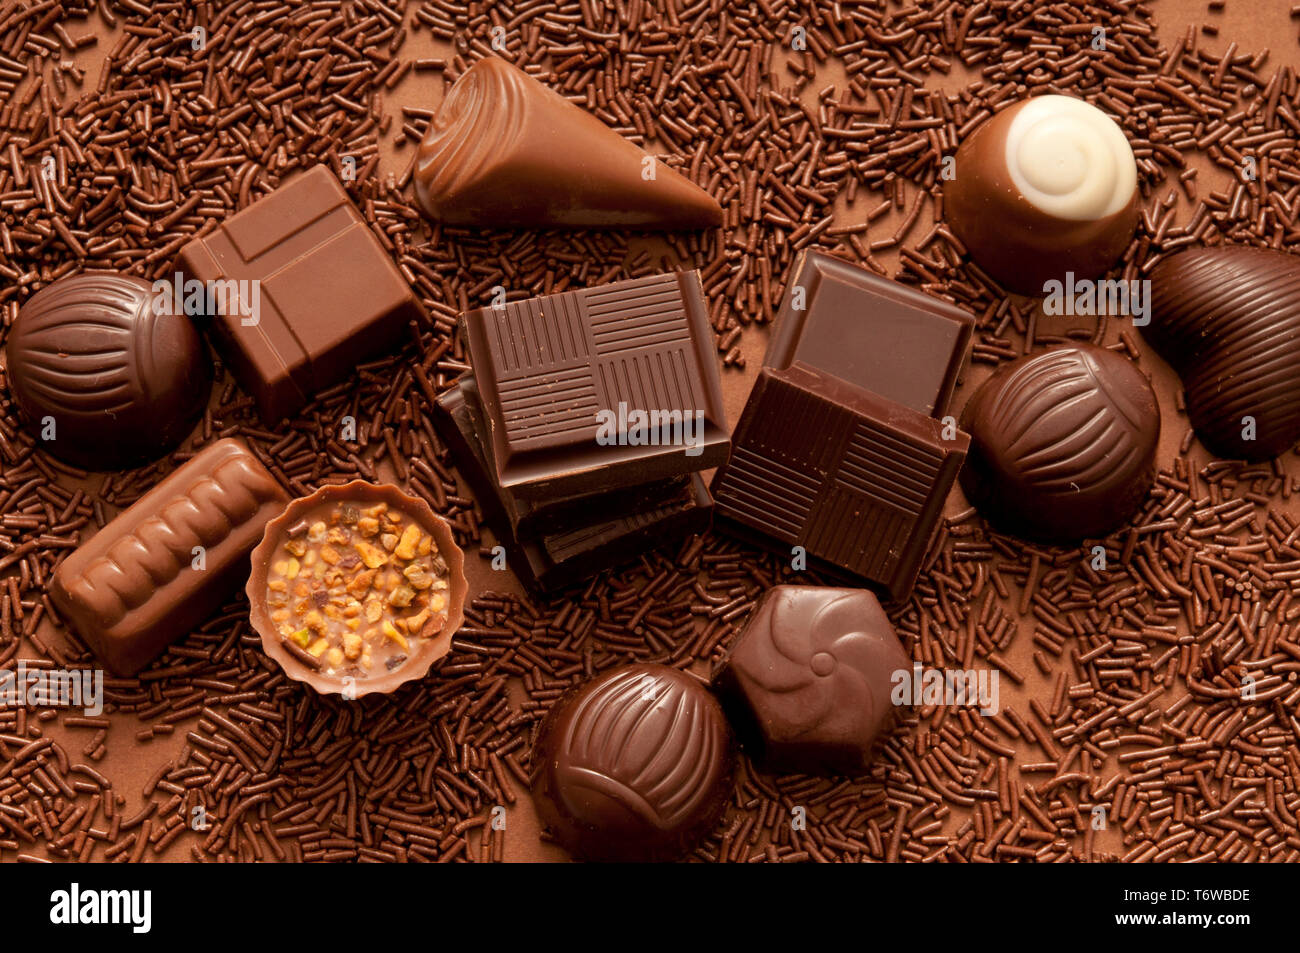 chocolate bonbons and pralines - Stock Image